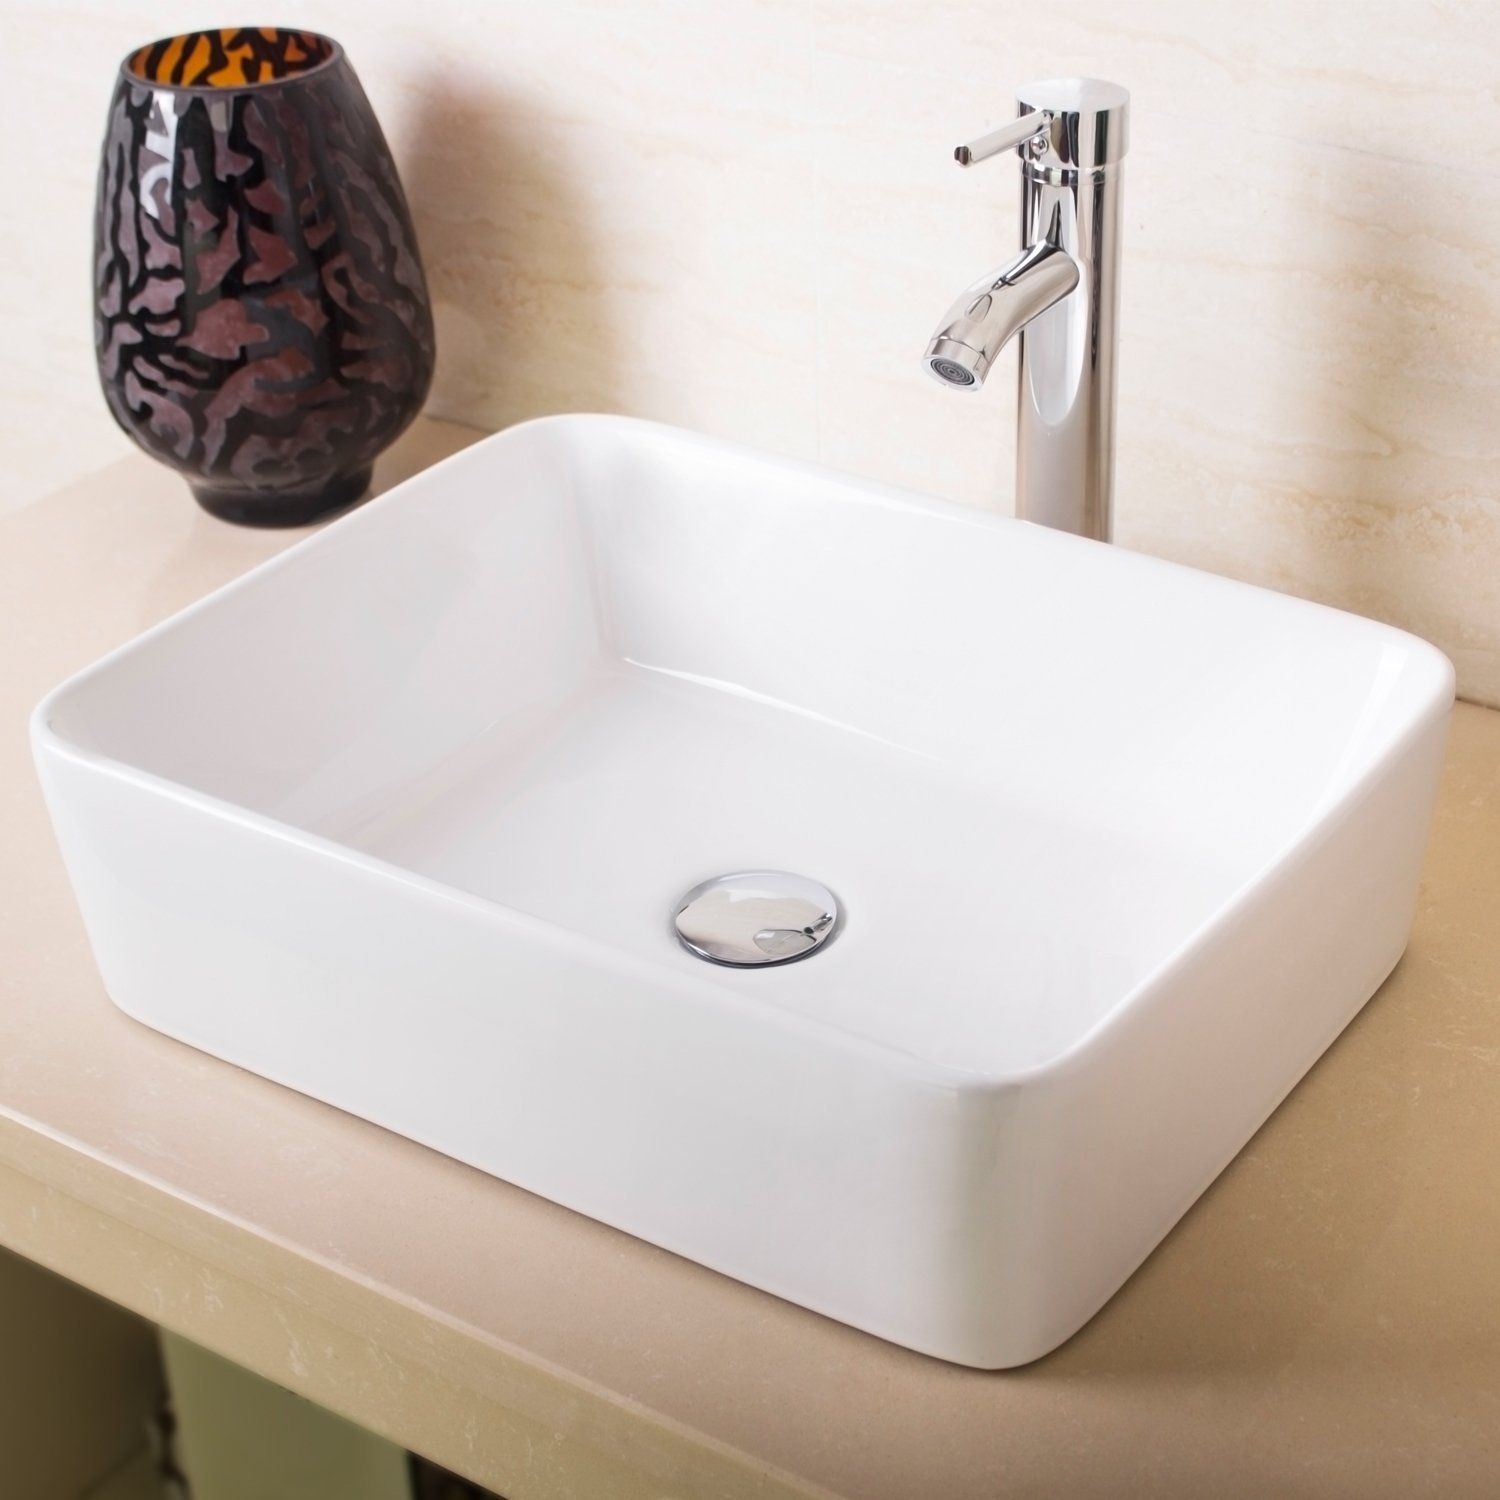 Ainfox Bathroom White Rectangle Porcelain Ceramic Vessel